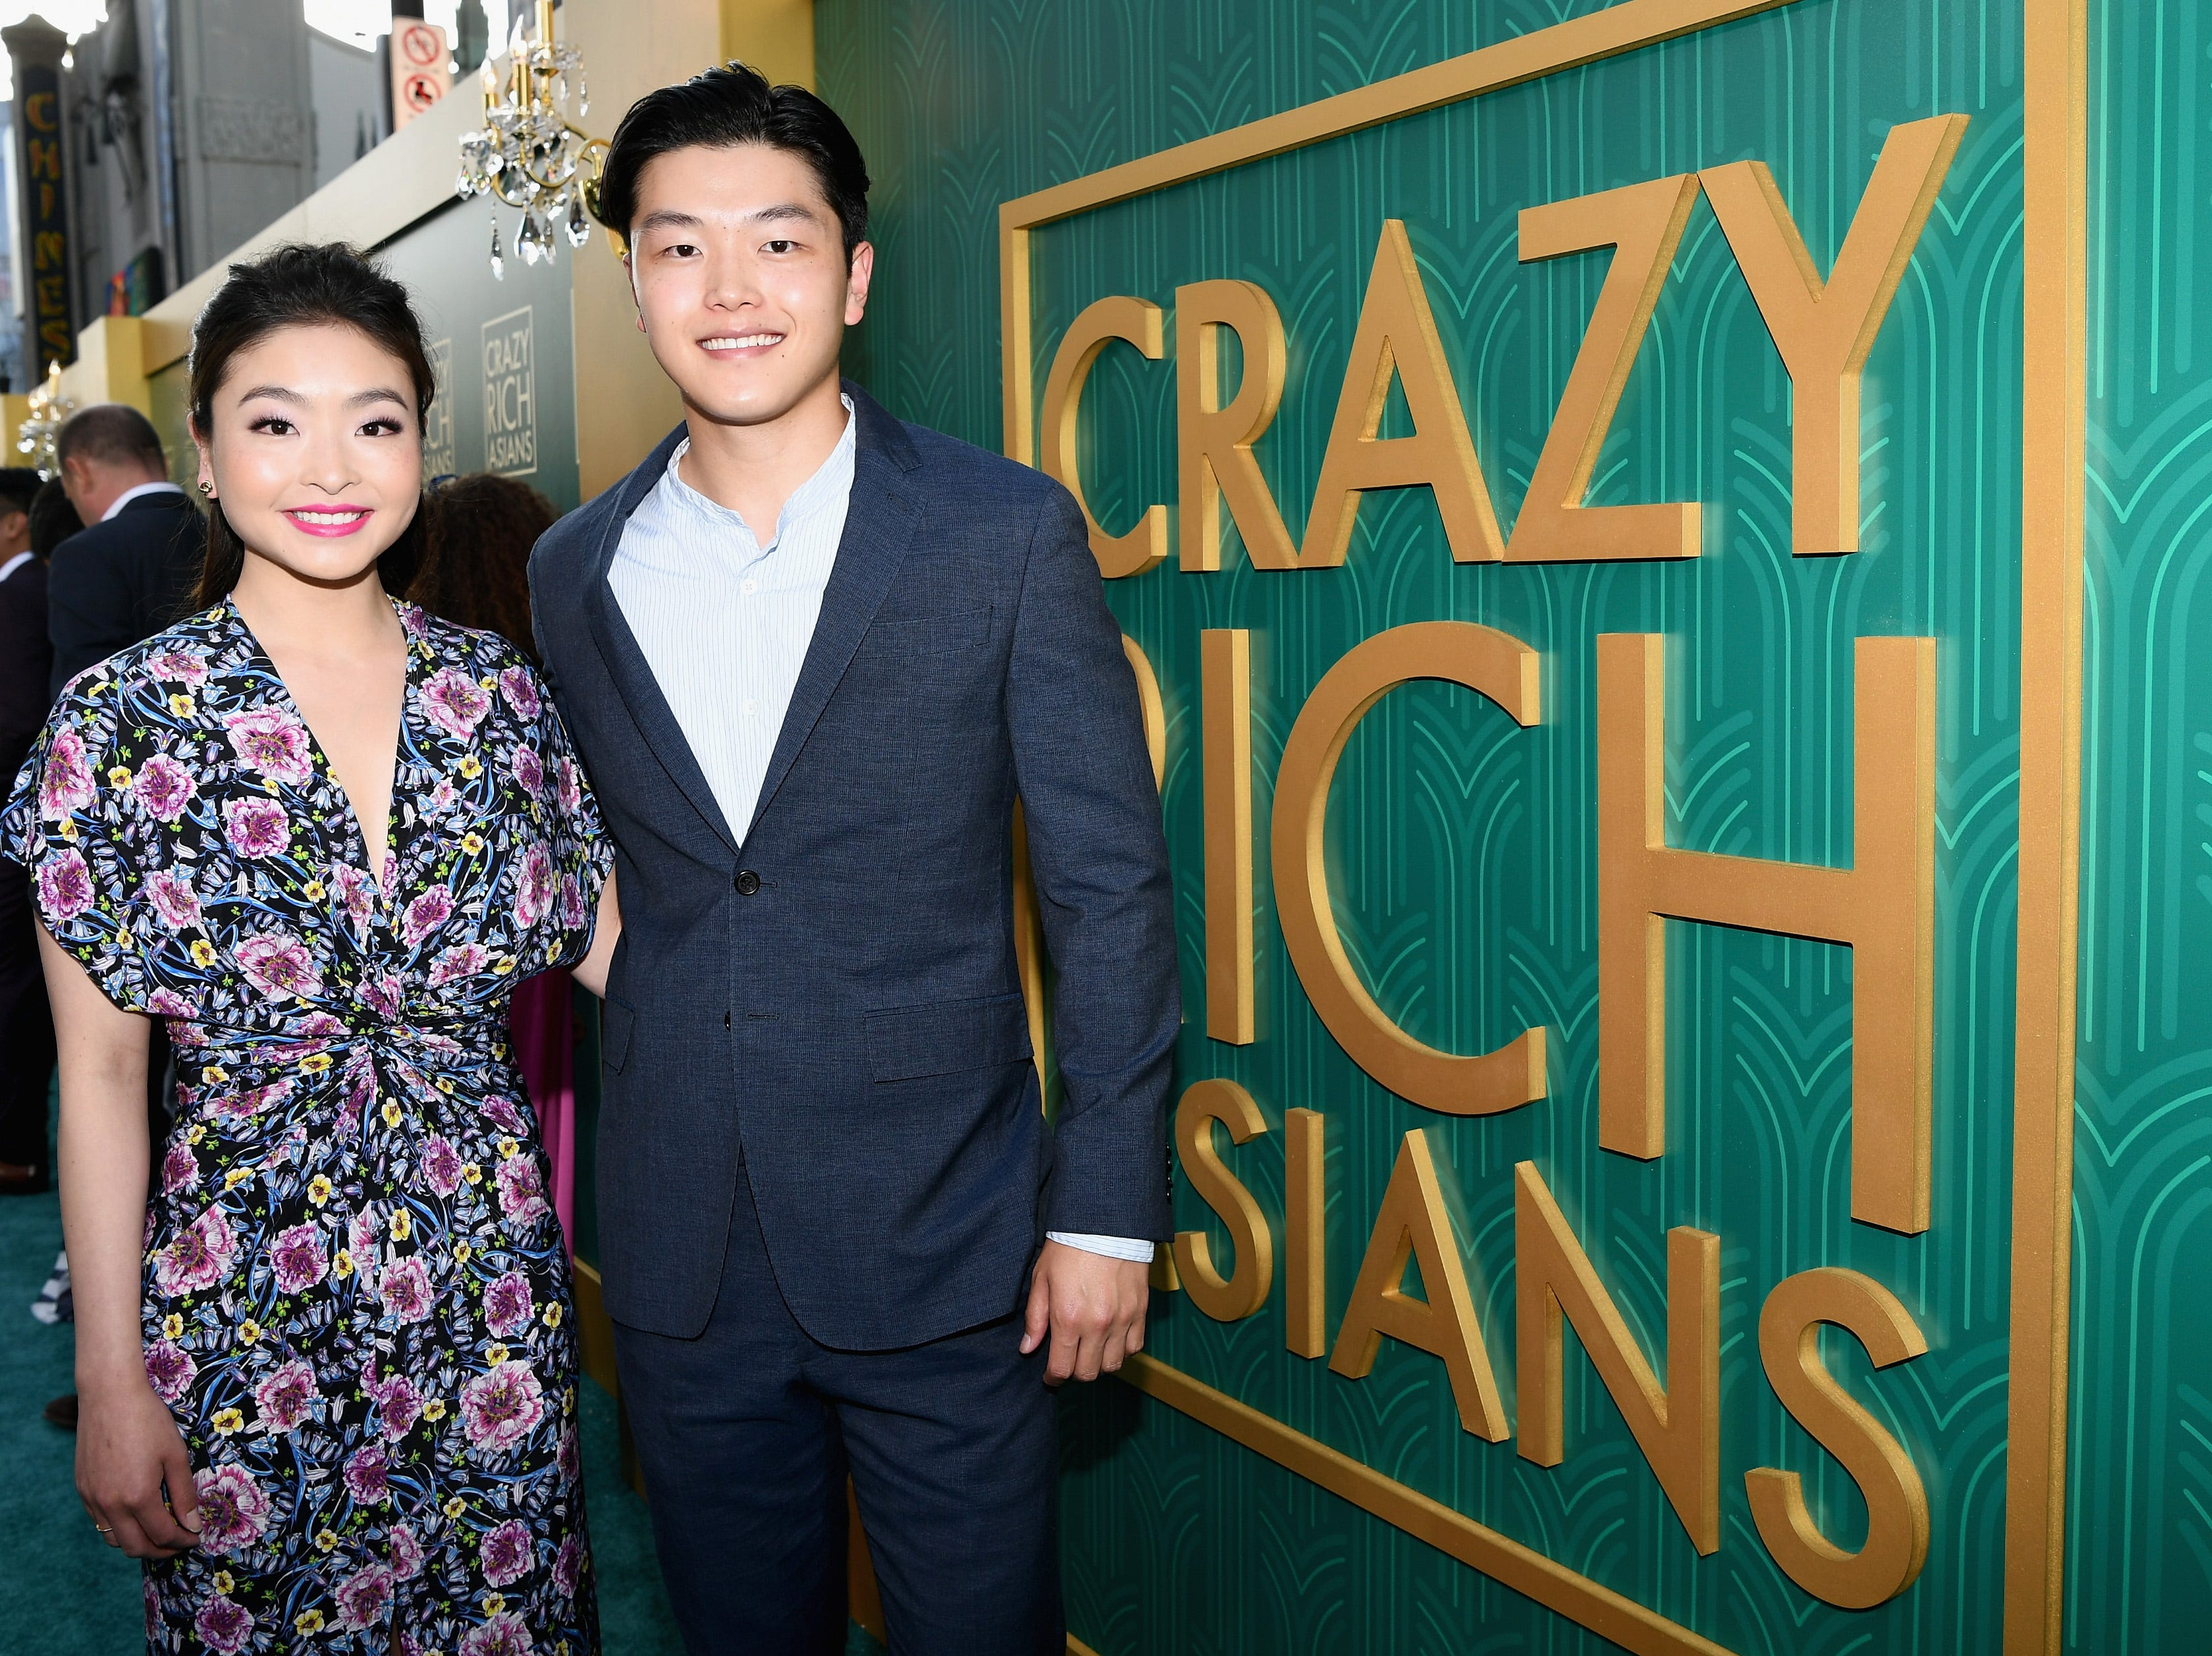 Olympic figure skaters Maia and Alex Shibutani looked picturesque on the red carpet.